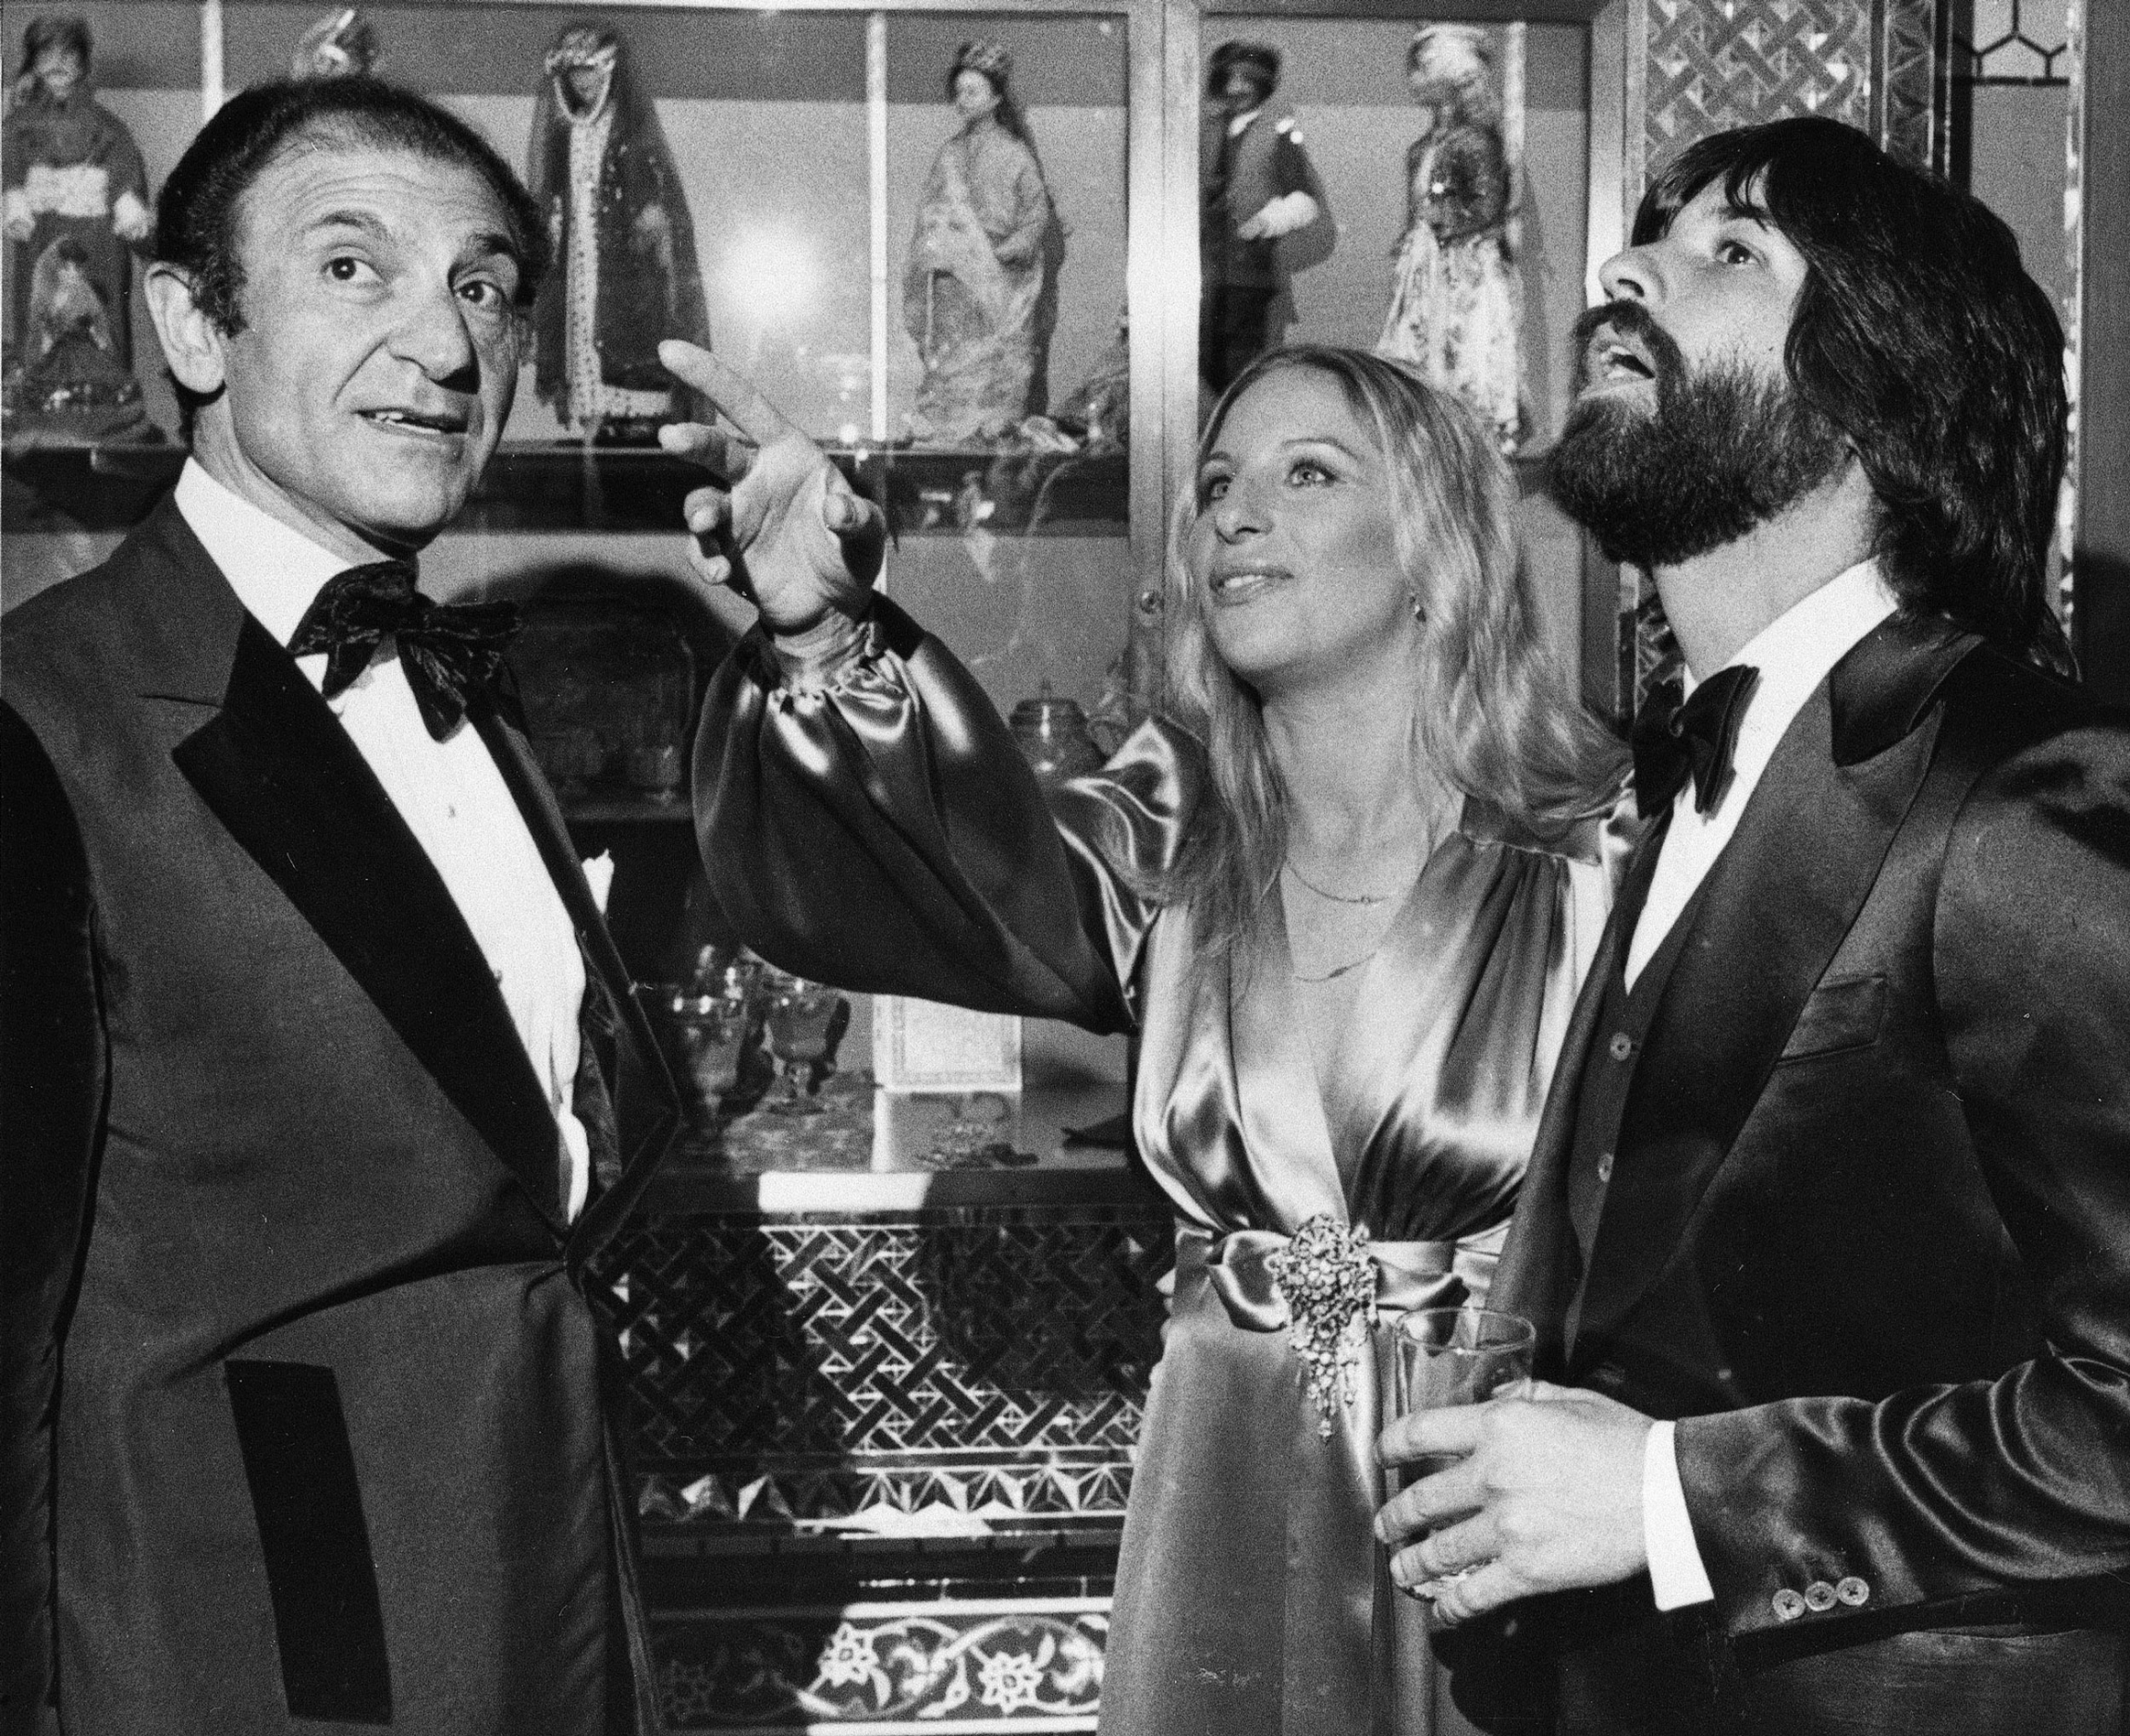 Iran's former Ambassador Ardeshir Zahedi, left, talks with actress Barbra Streisand is shown looking up and pointing.